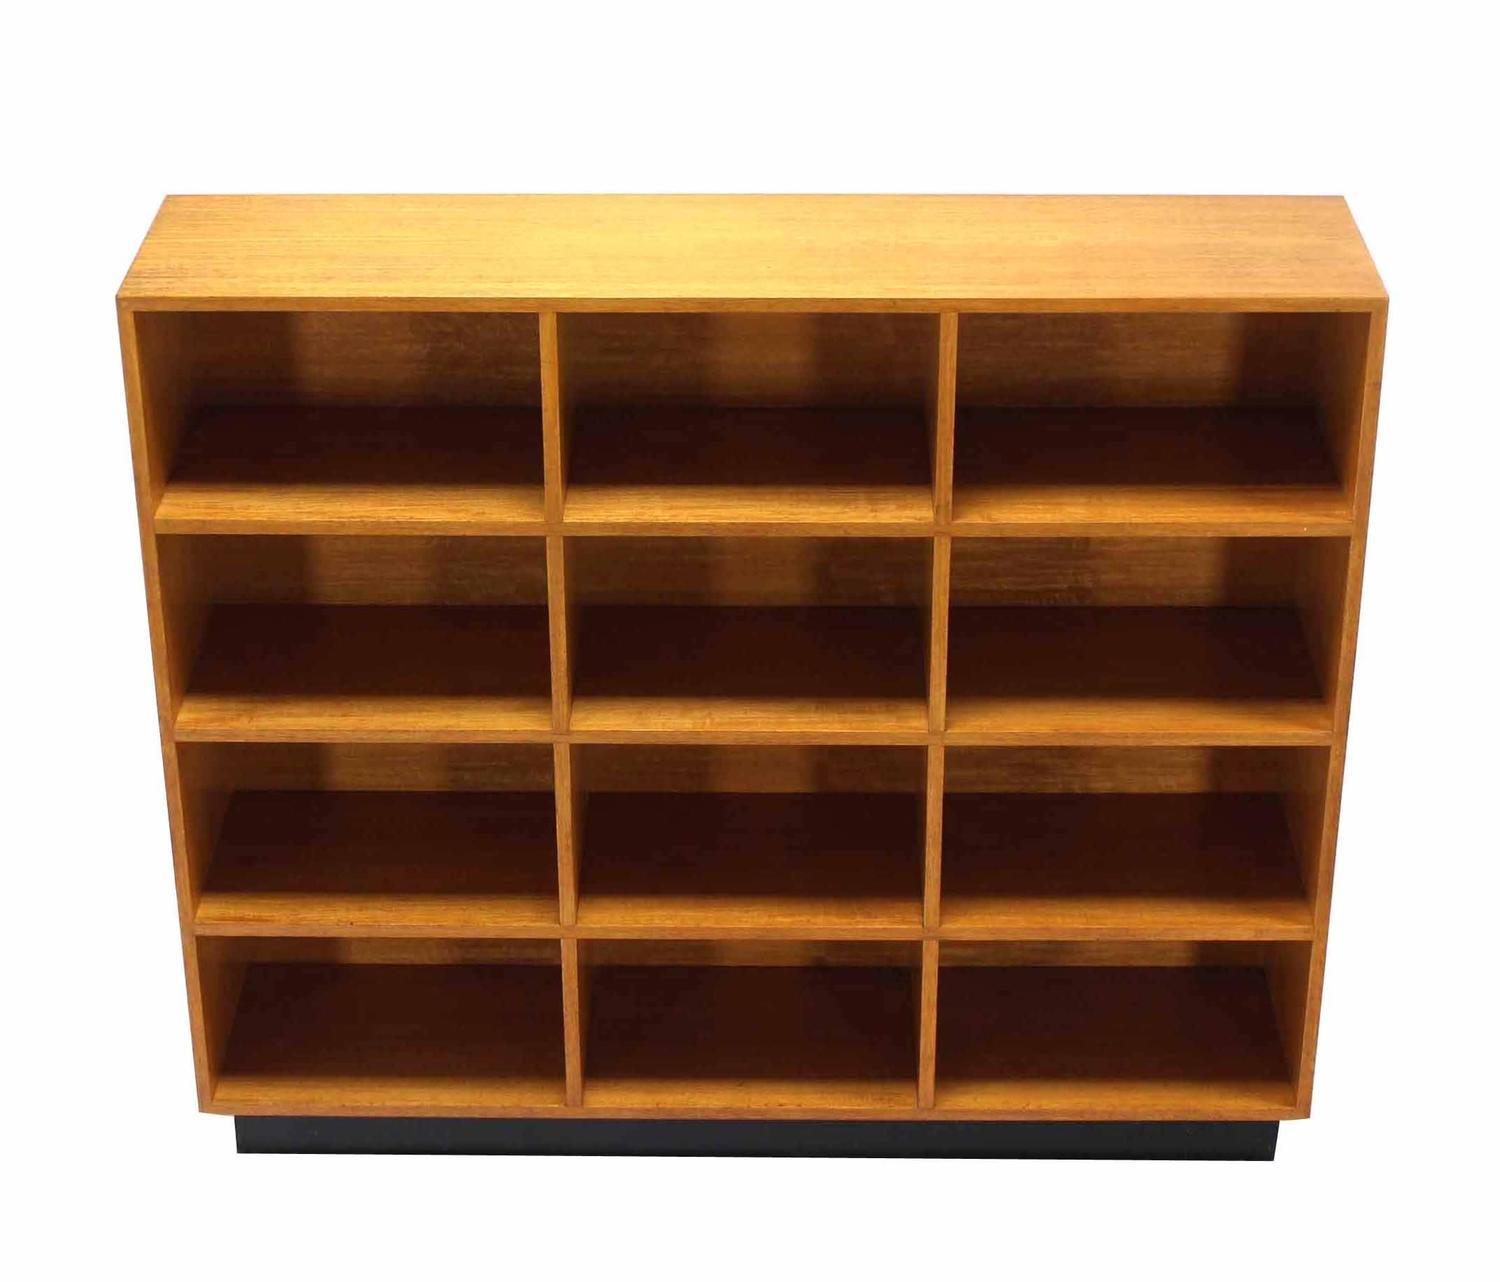 Marvelous photograph of Nice Custom Solid Wood Shelving Unit Bookcase For Sale at 1stdibs with #C48107 color and 1500x1282 pixels